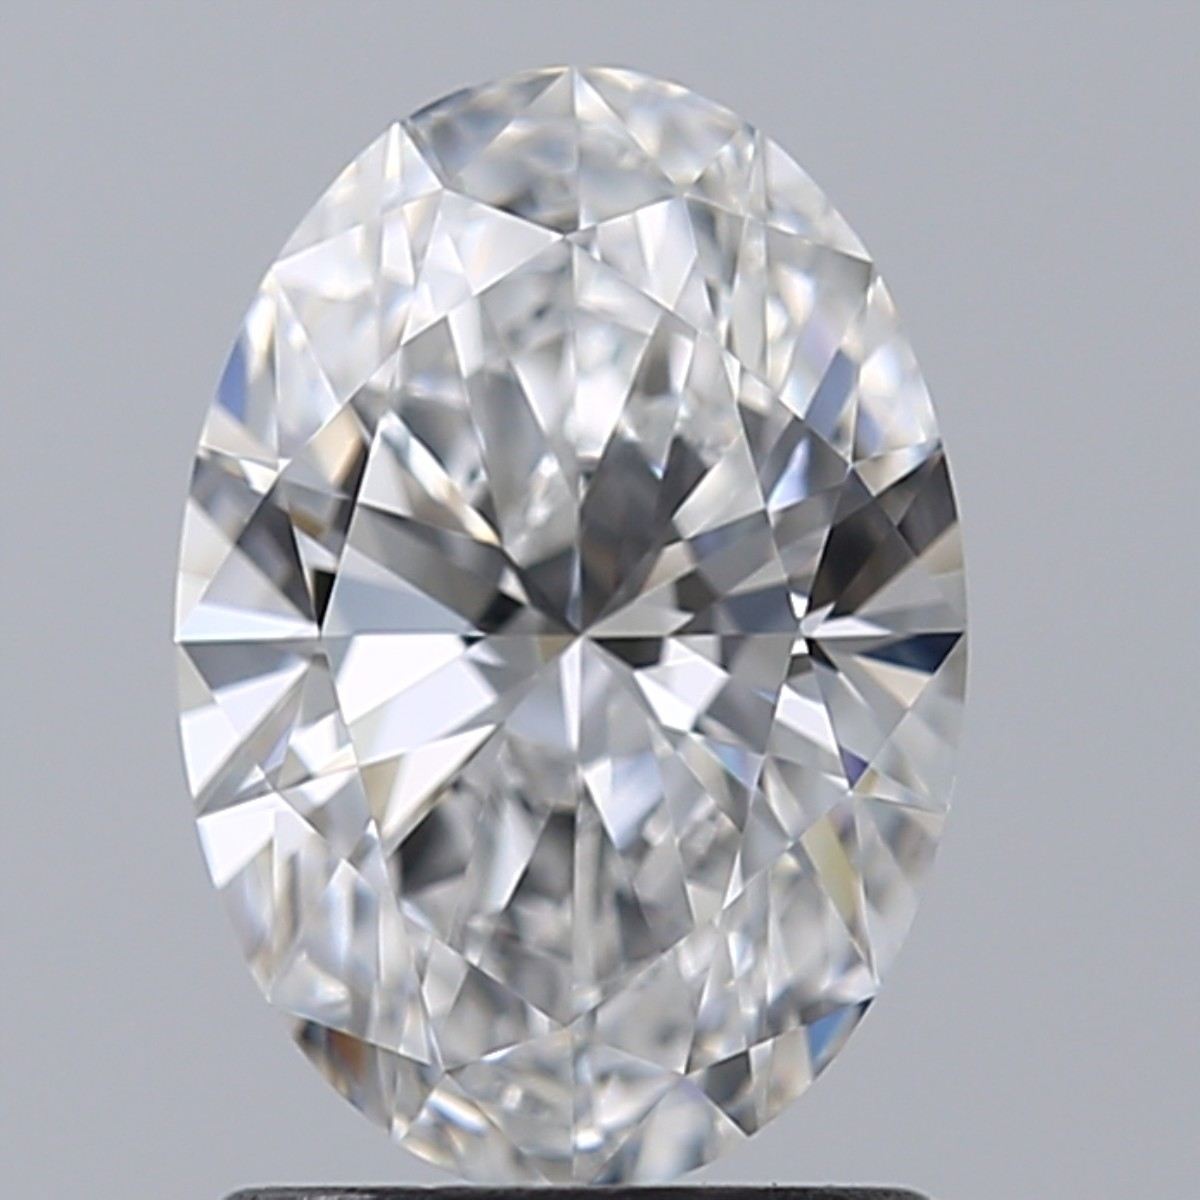 1.25 Carat Oval Diamond (E/IF)